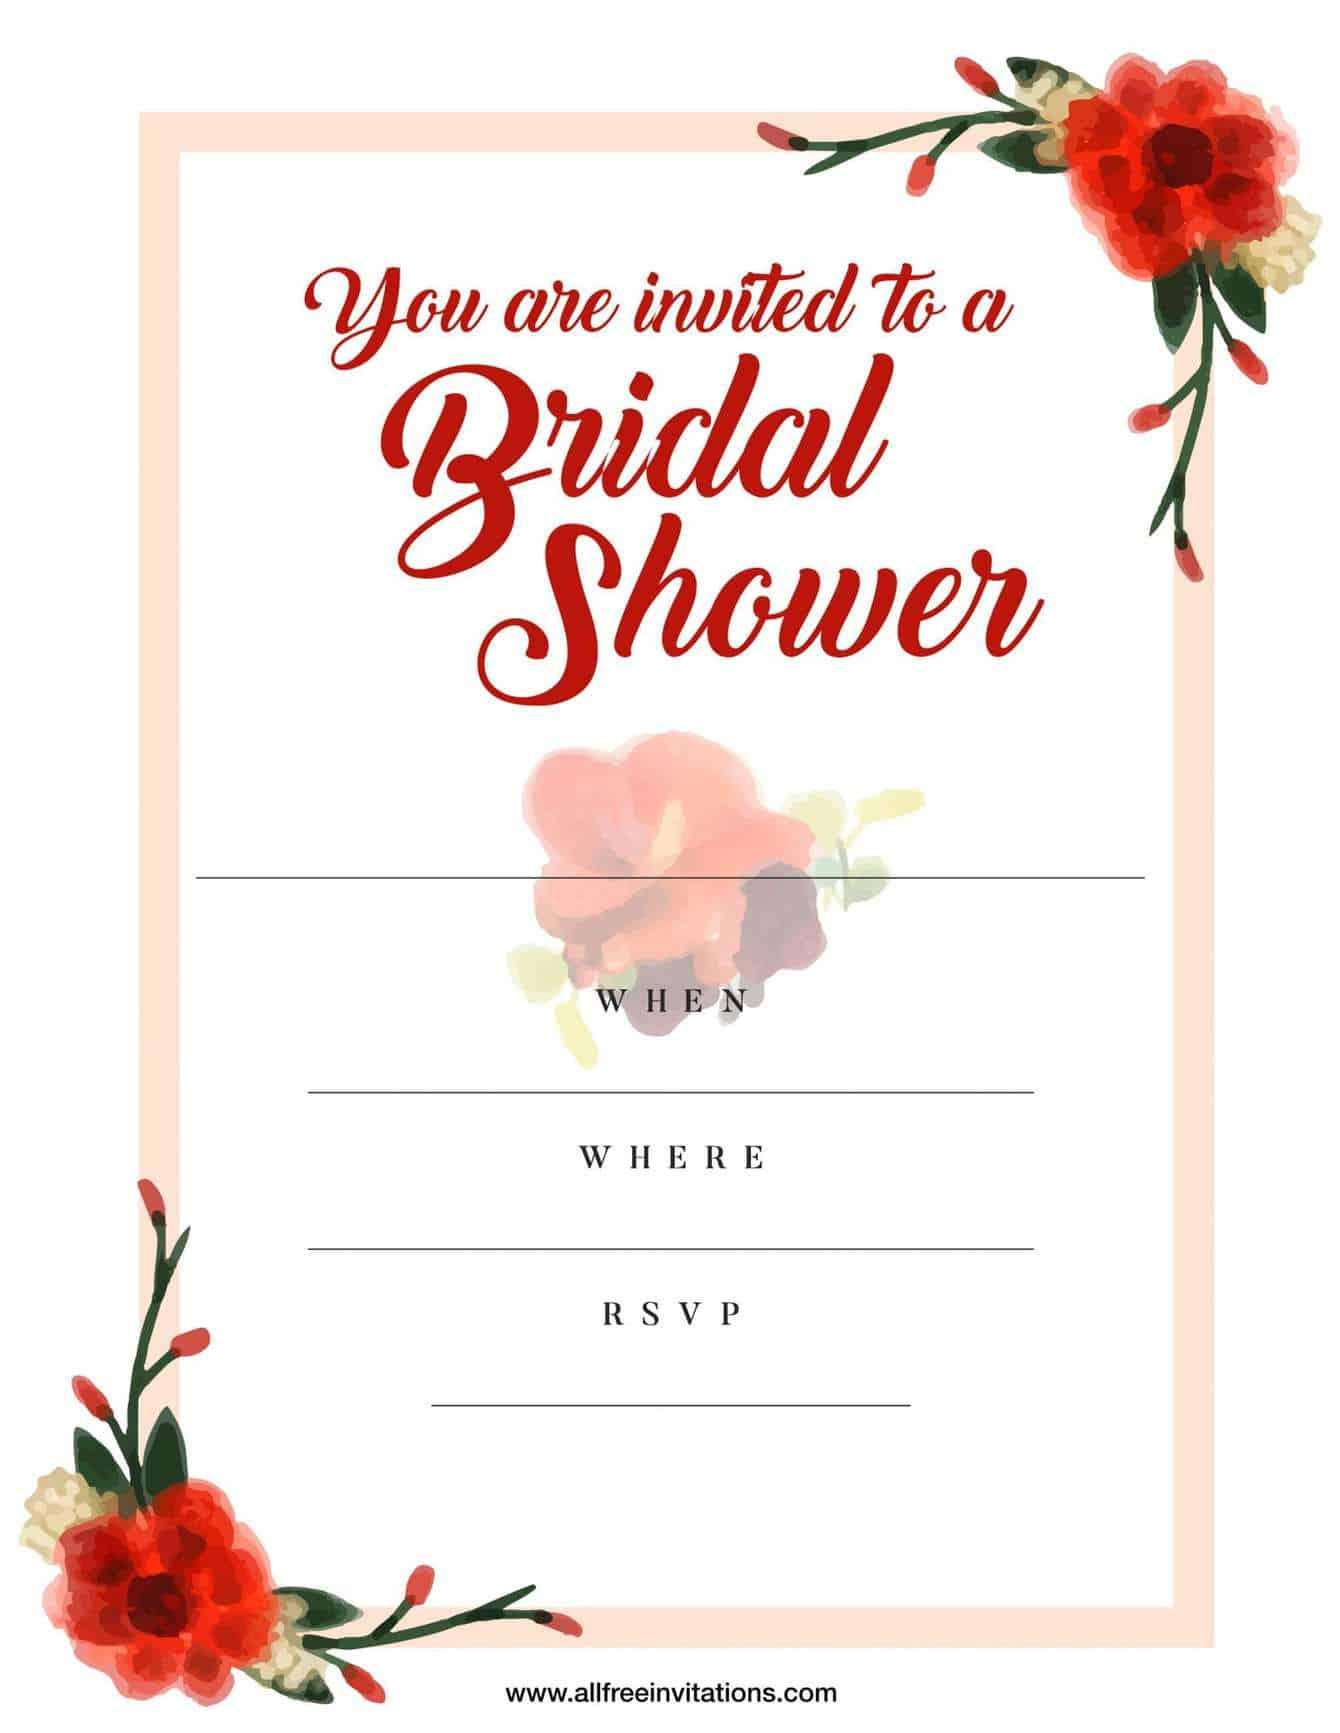 Bridal shower invitation red floral